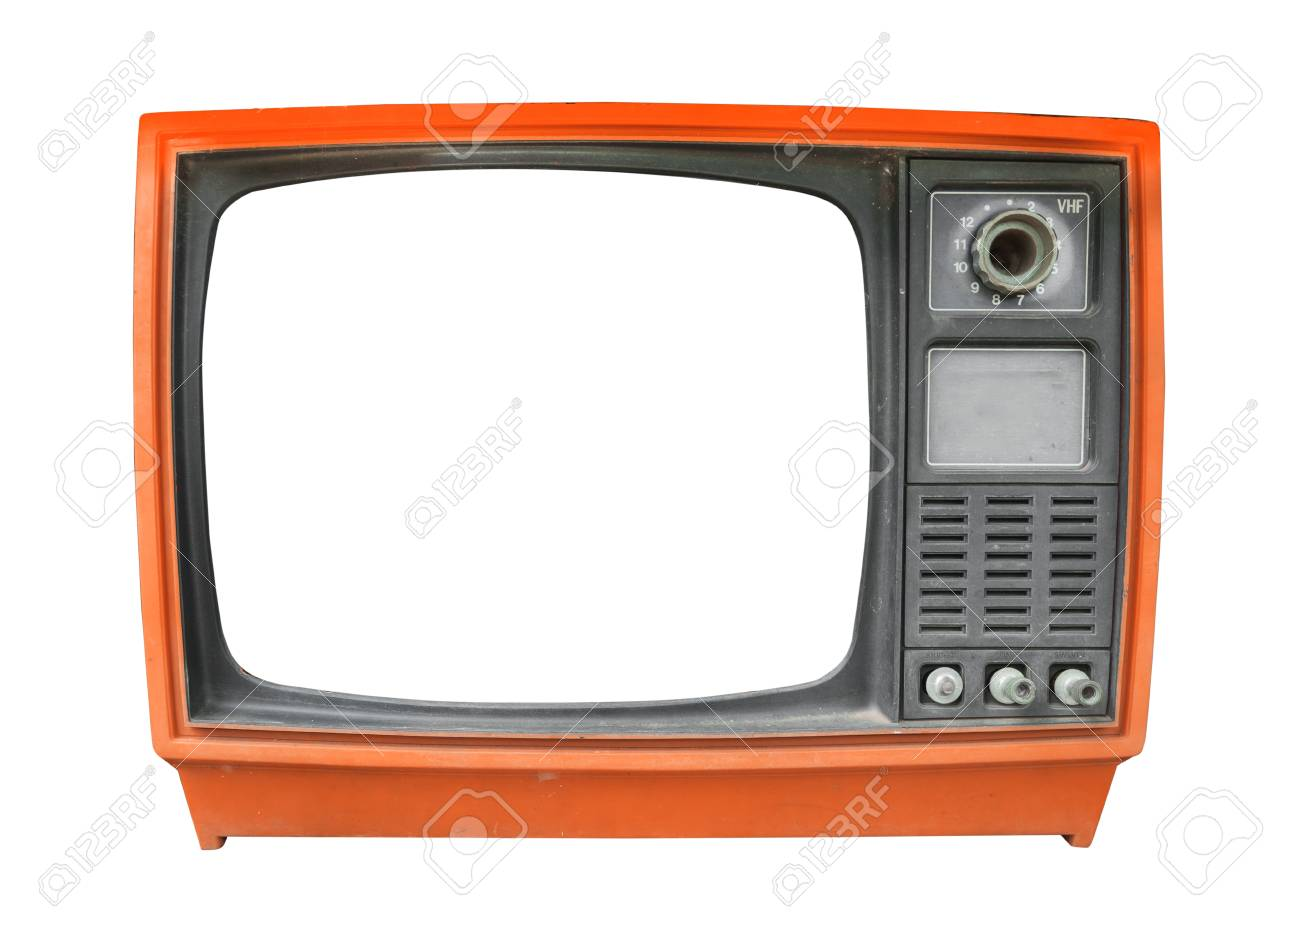 retro television old vintage tv with frame screen isolate on white with clipping path for